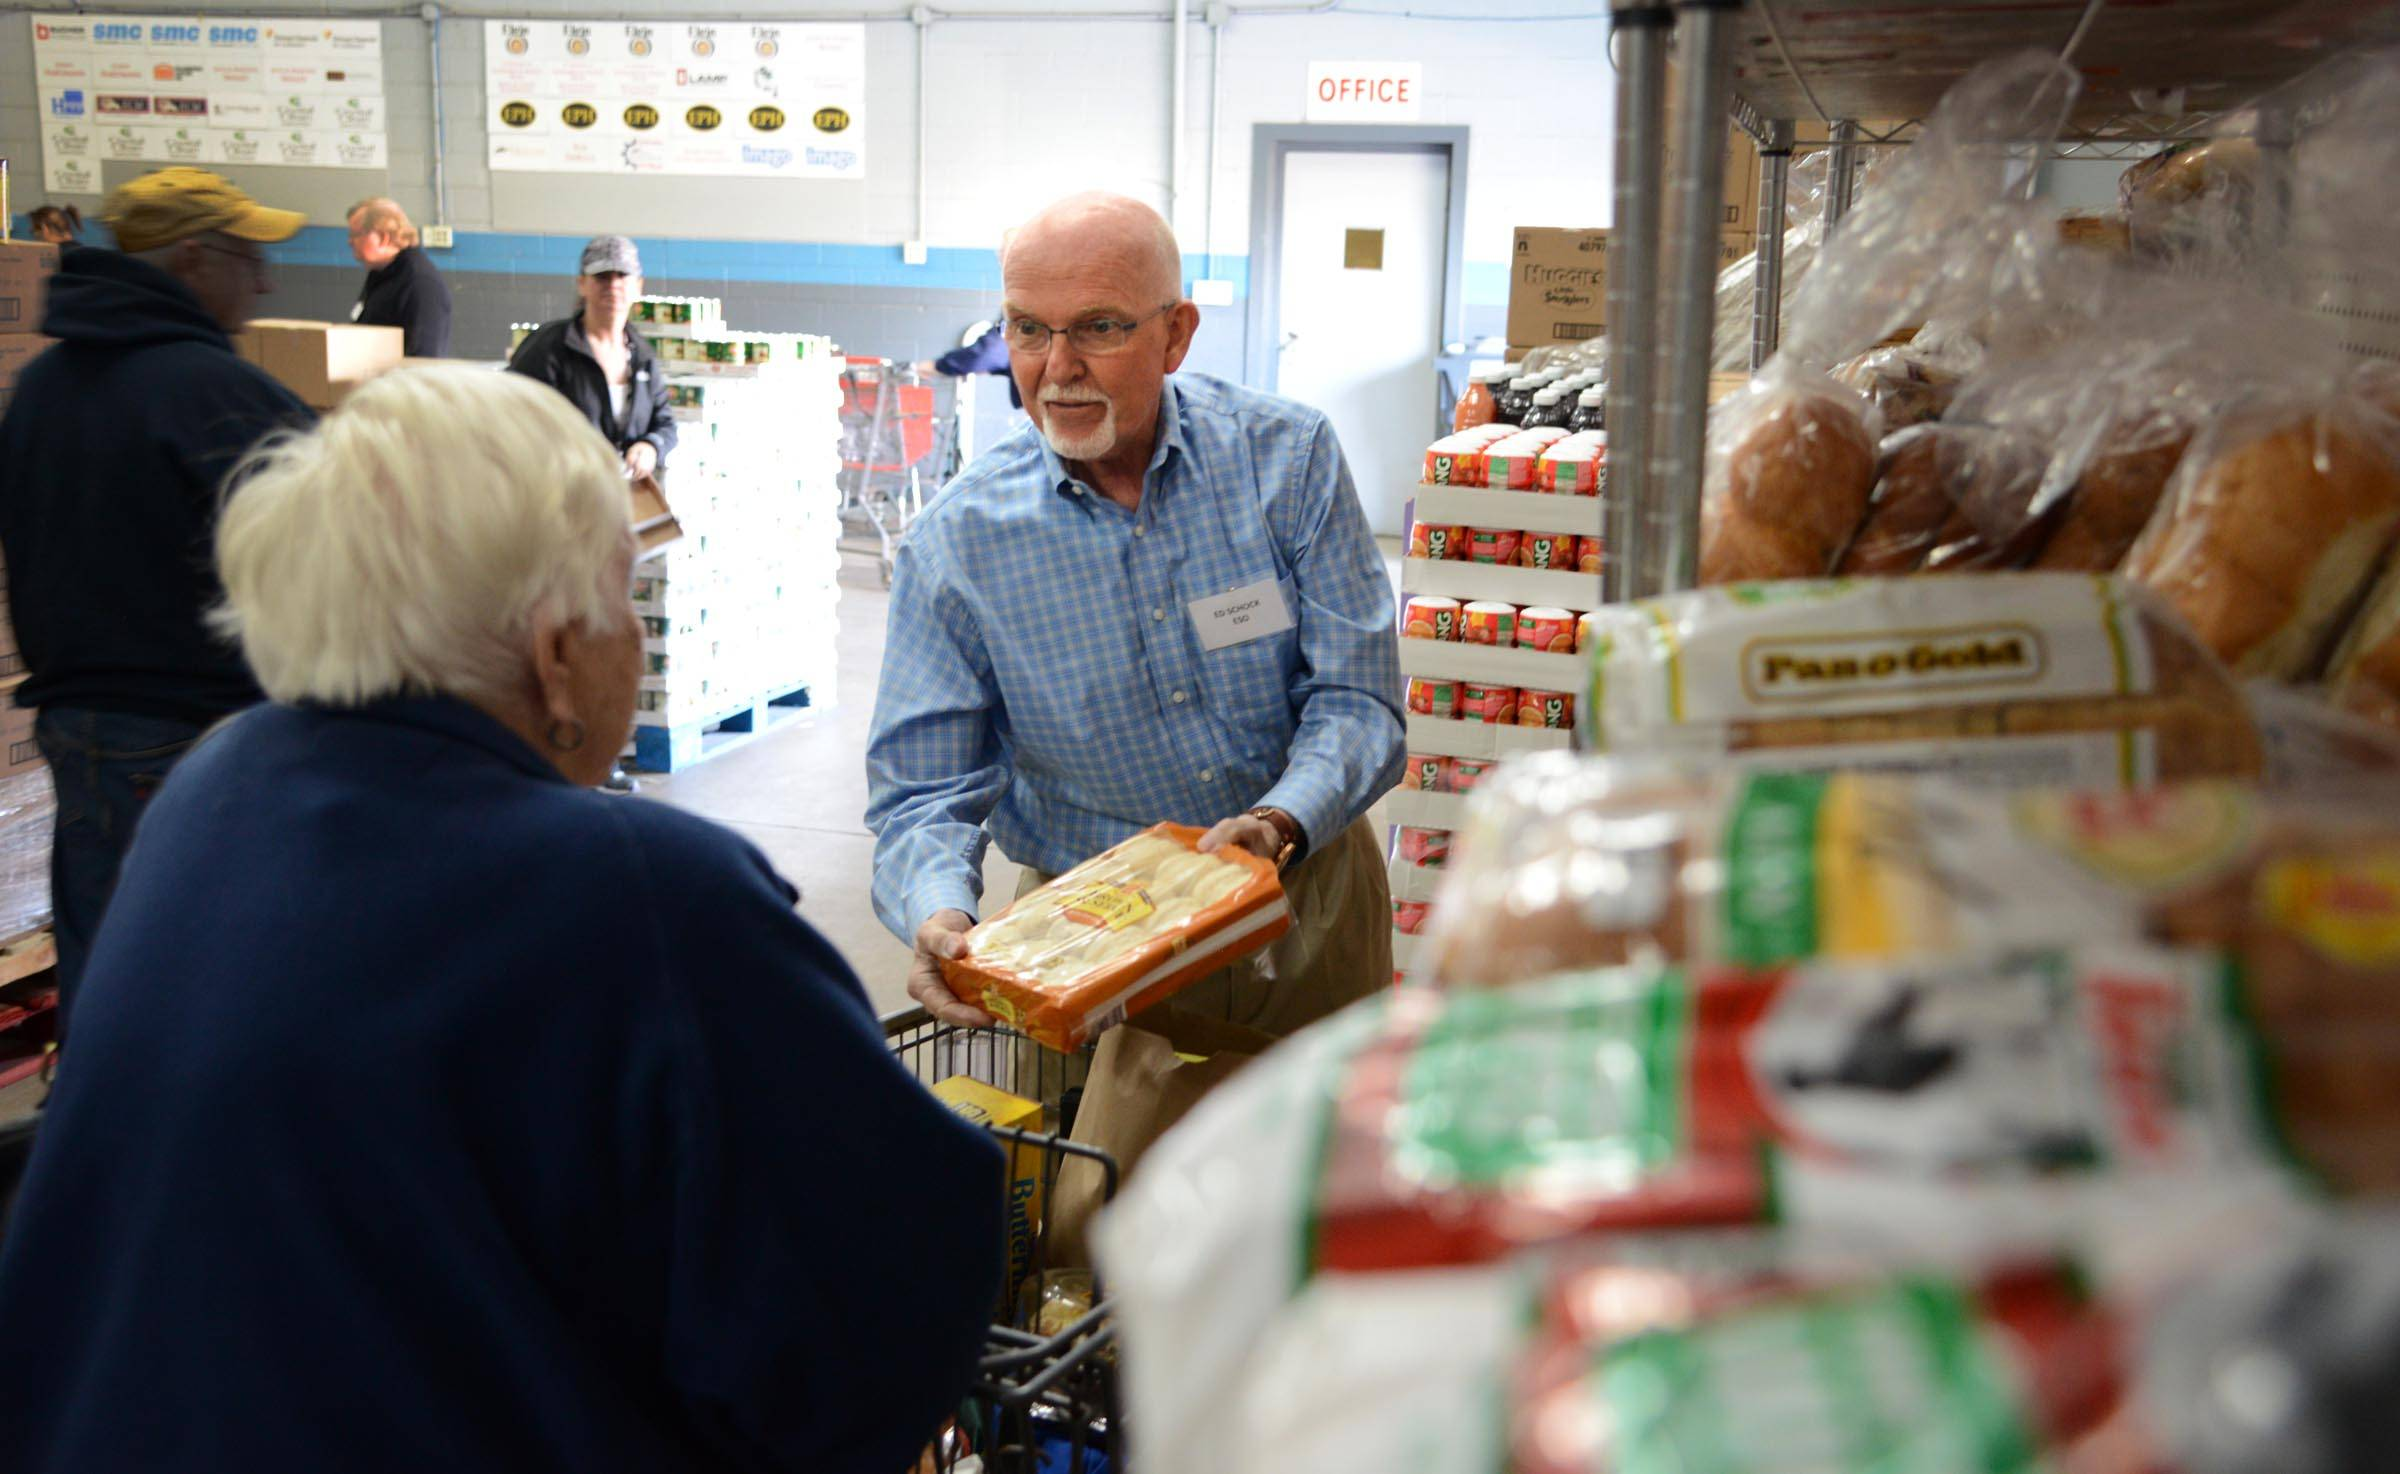 The Centre of Elgin might be renamed after former Elgin Mayor Ed Schock, pictured here volunteering at Food for Greater Elgin in 2015.